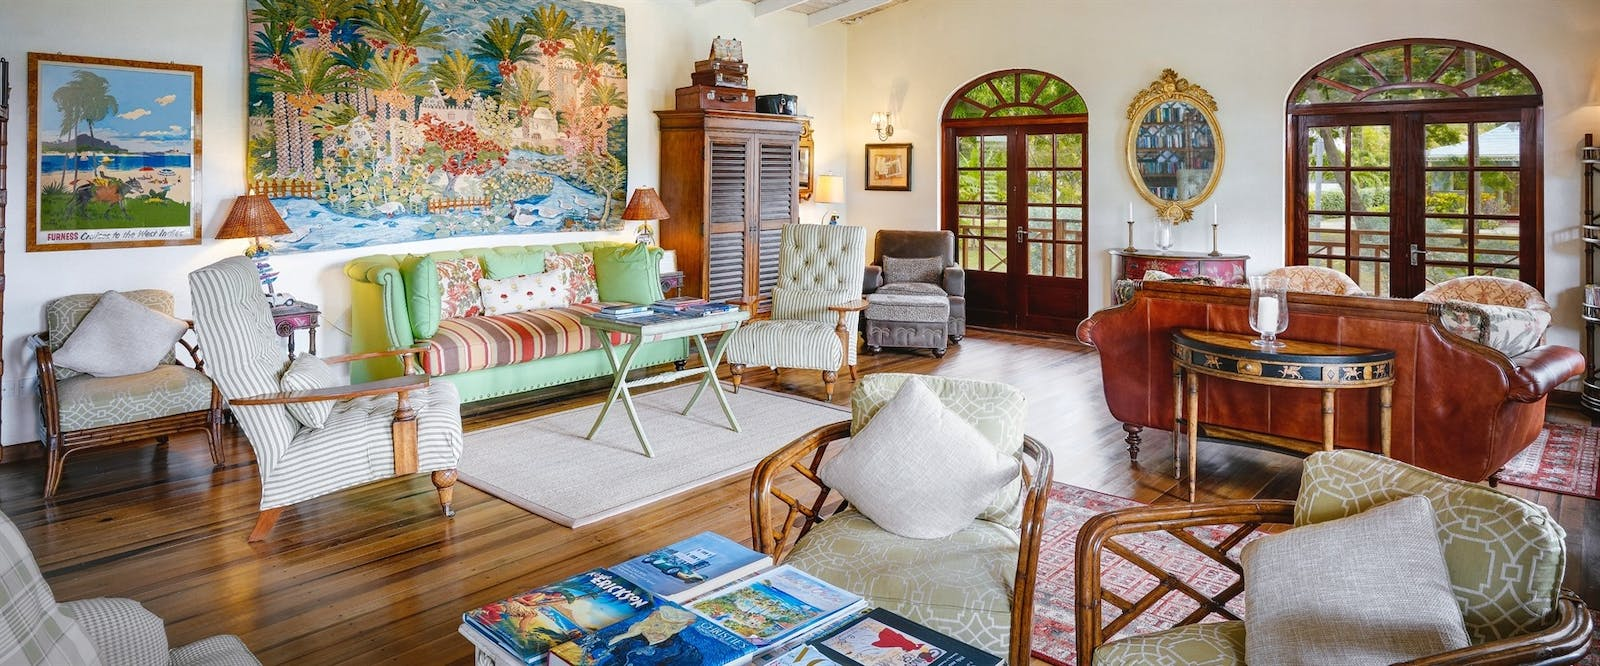 Reception Library at Bequia Beach Hotel, St Vincent and The Grenadines